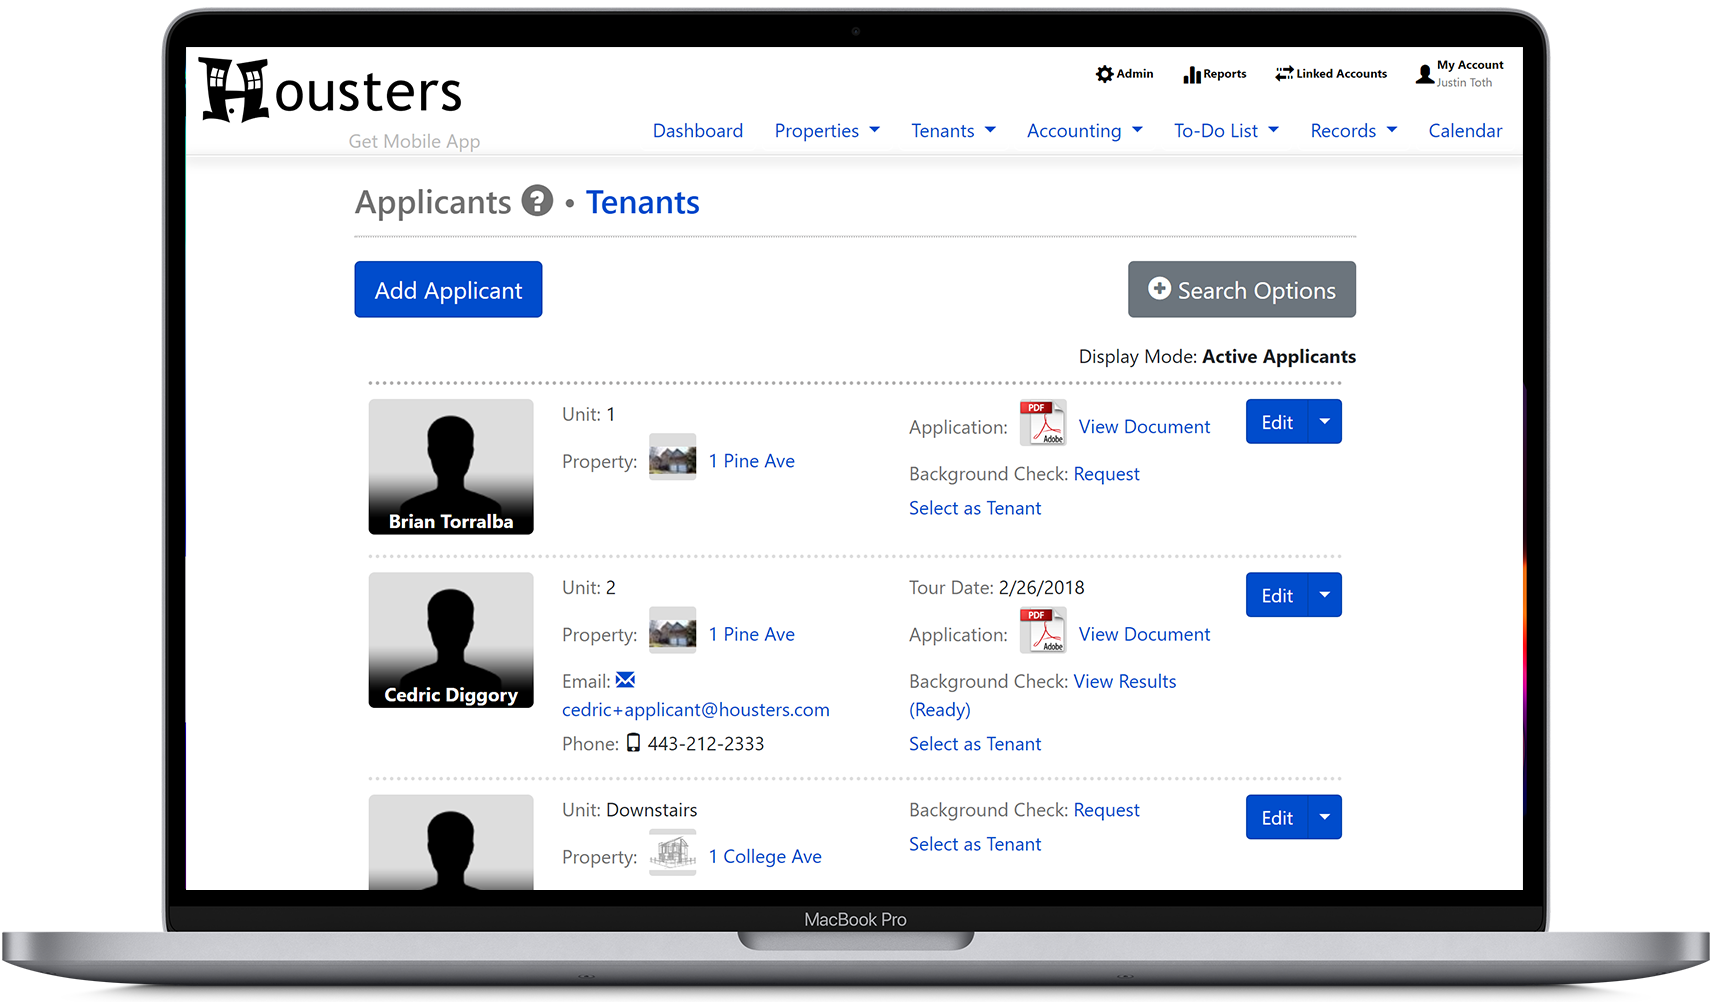 View a list of applicants